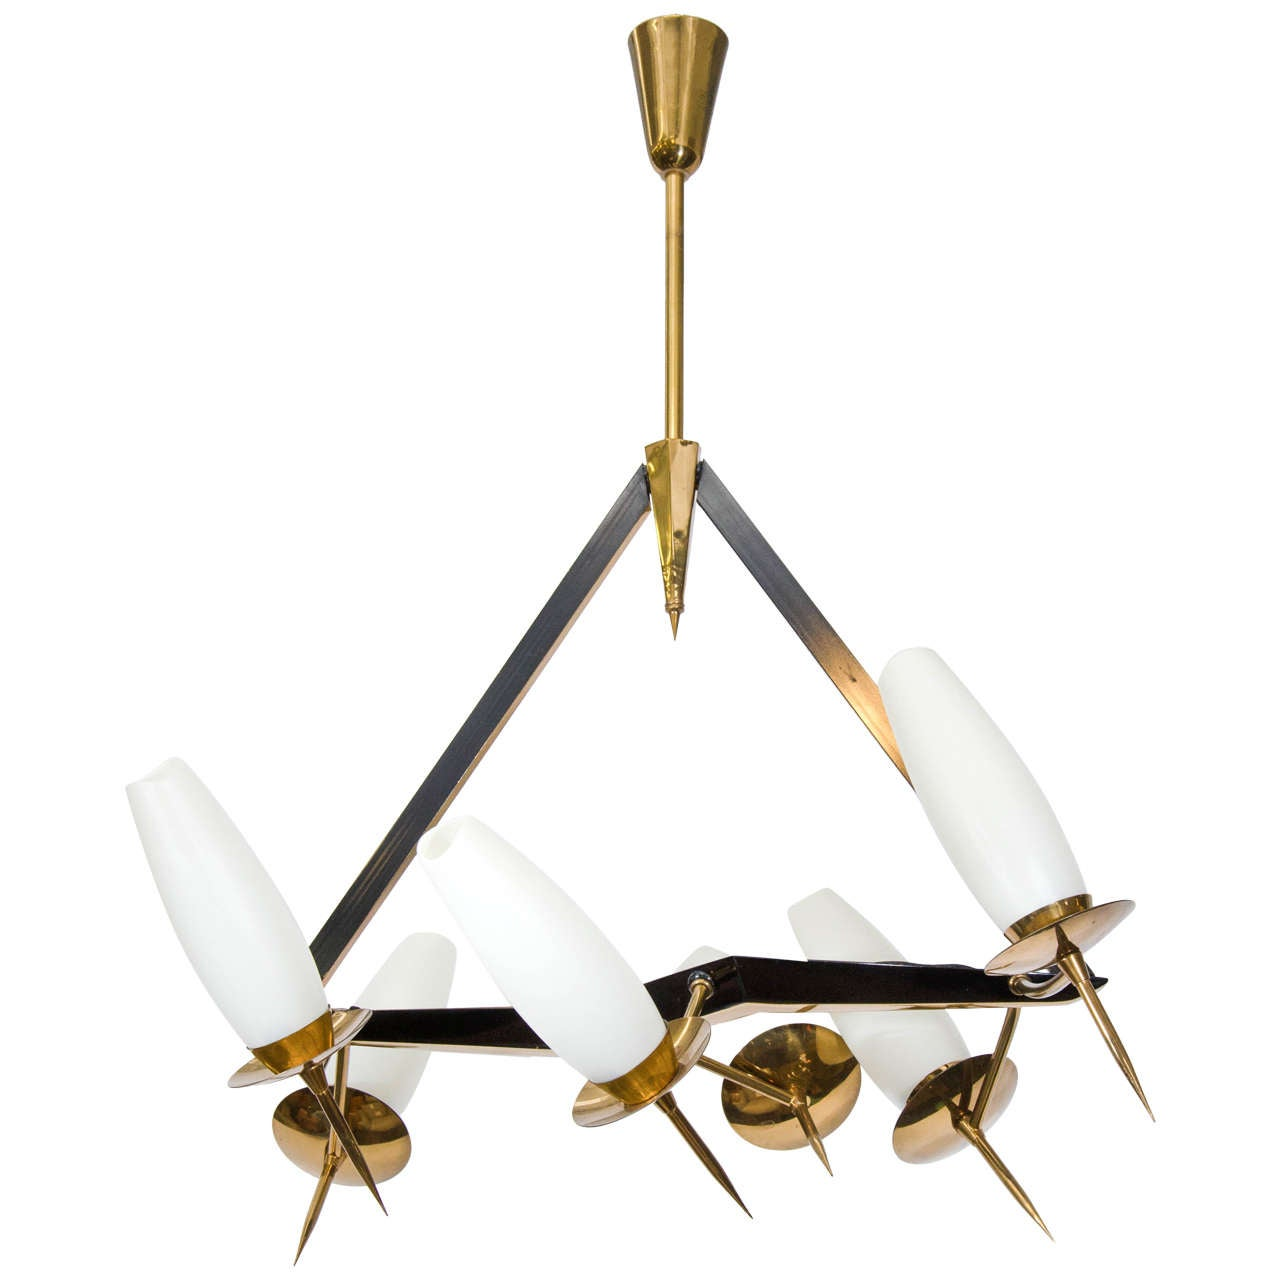 Midcentury French Chandelier with Adjustable Arms